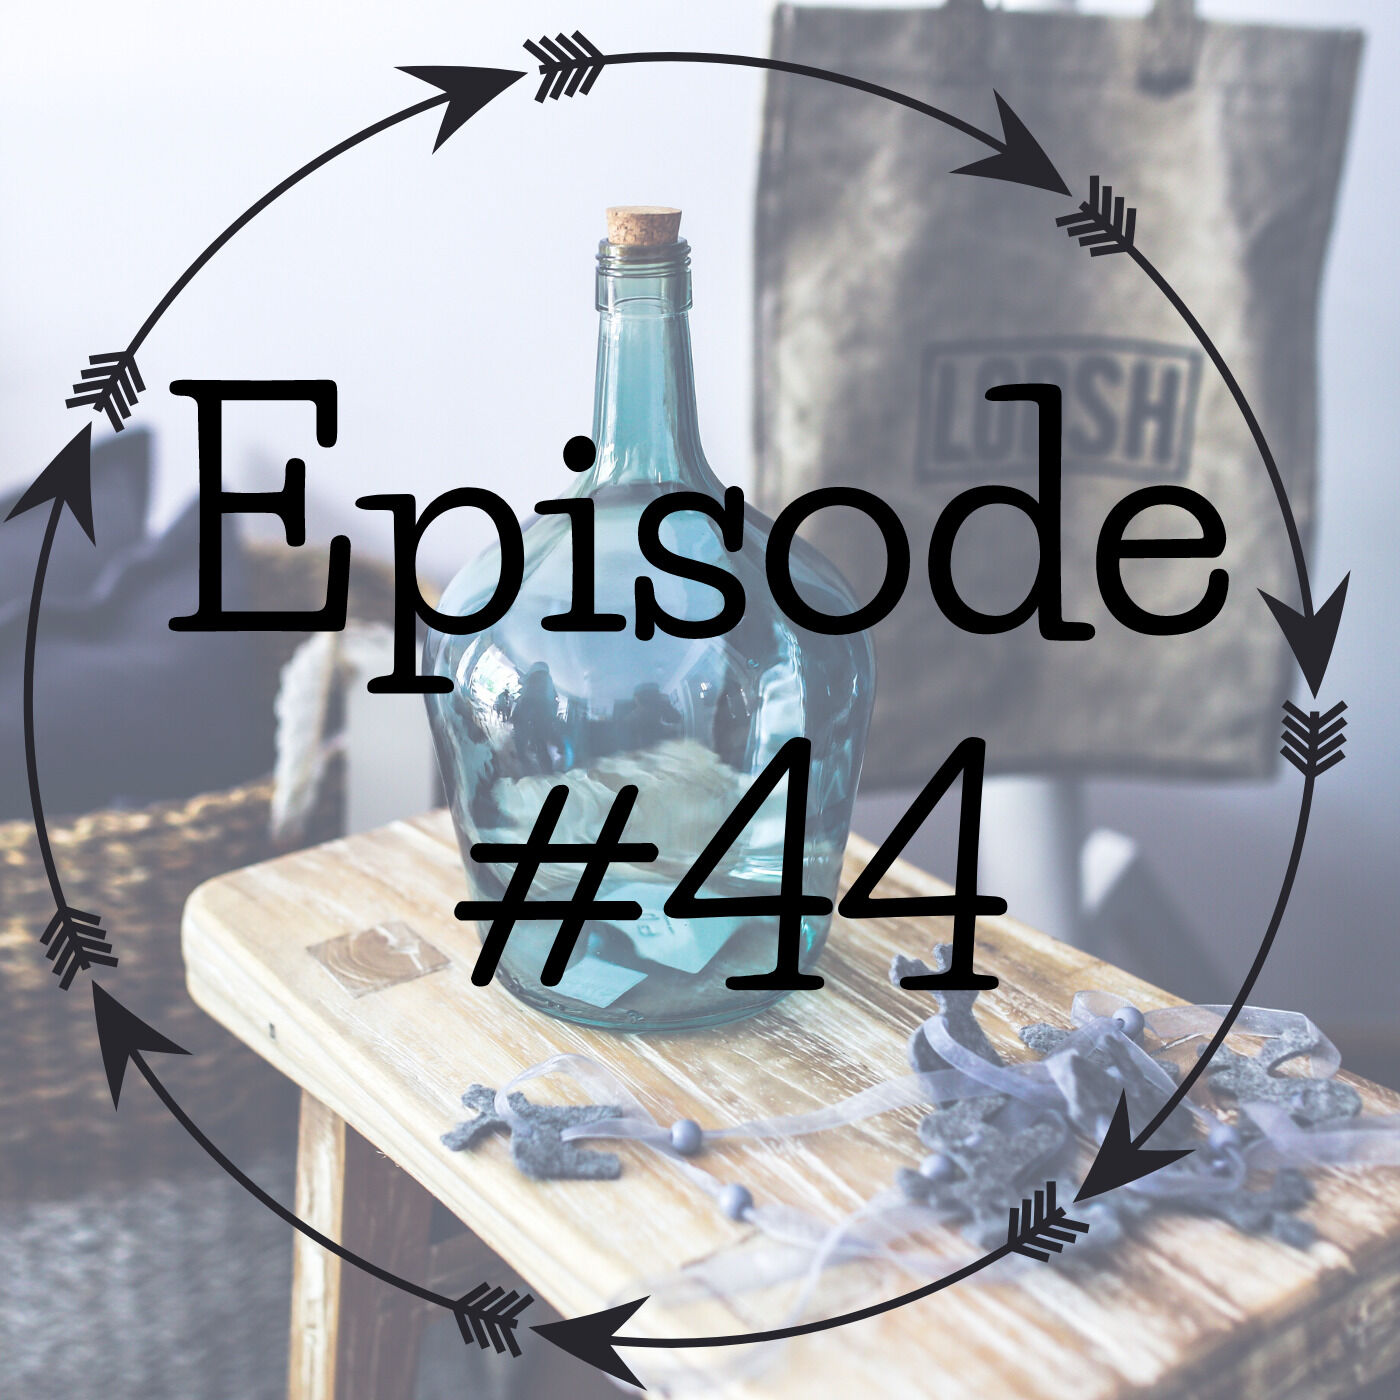 Episode #44: A dilemma about strict routines and MVPs during COVID-19